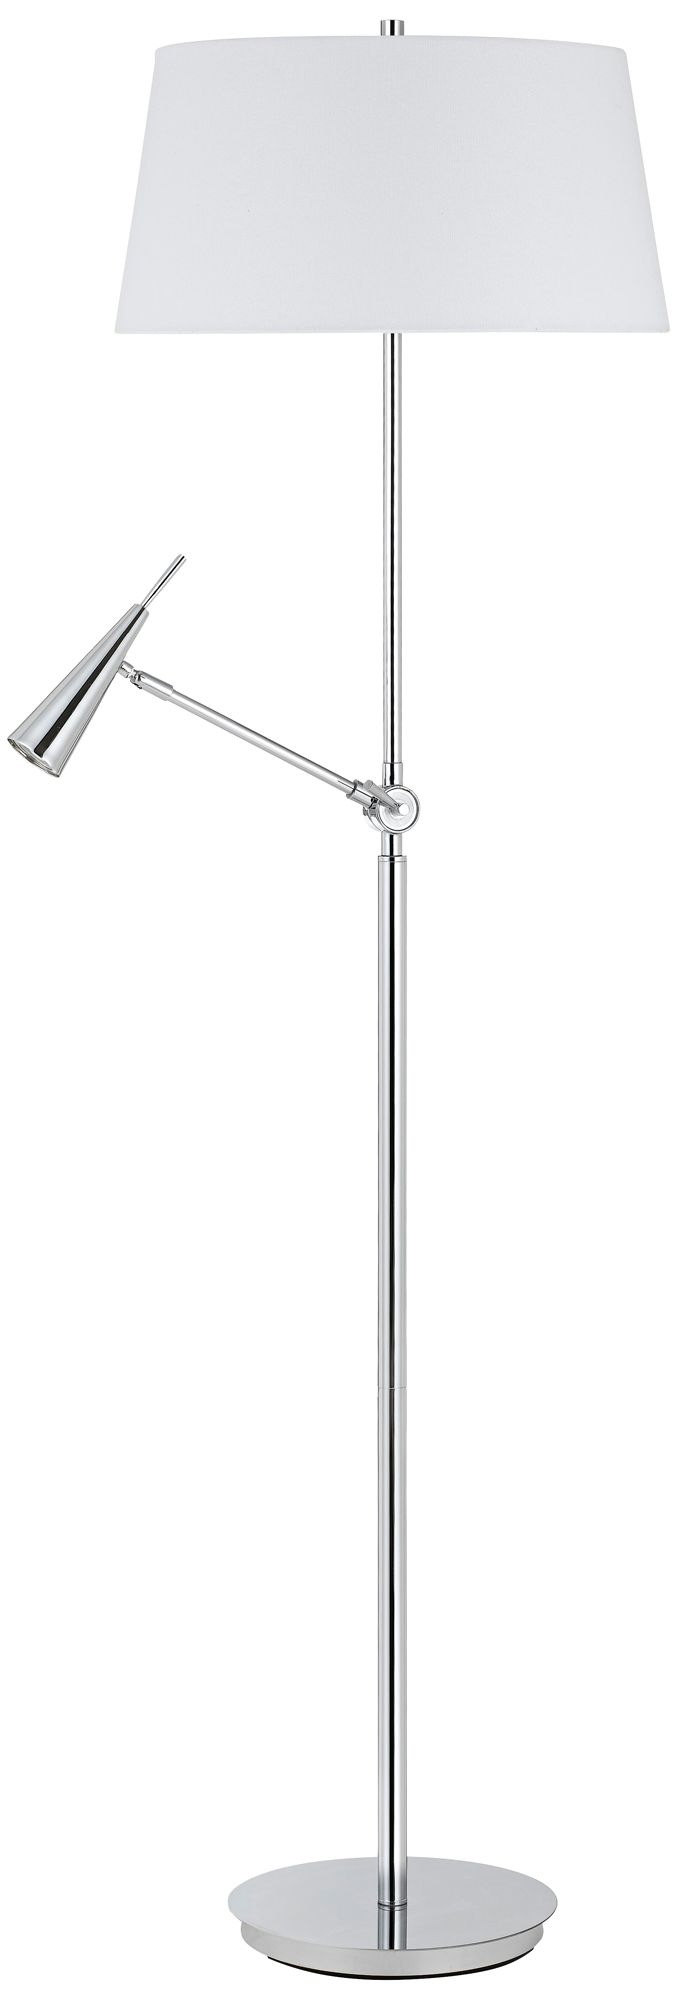 Jacoby Polished Chrome Floor Lamp With LED Reading Light